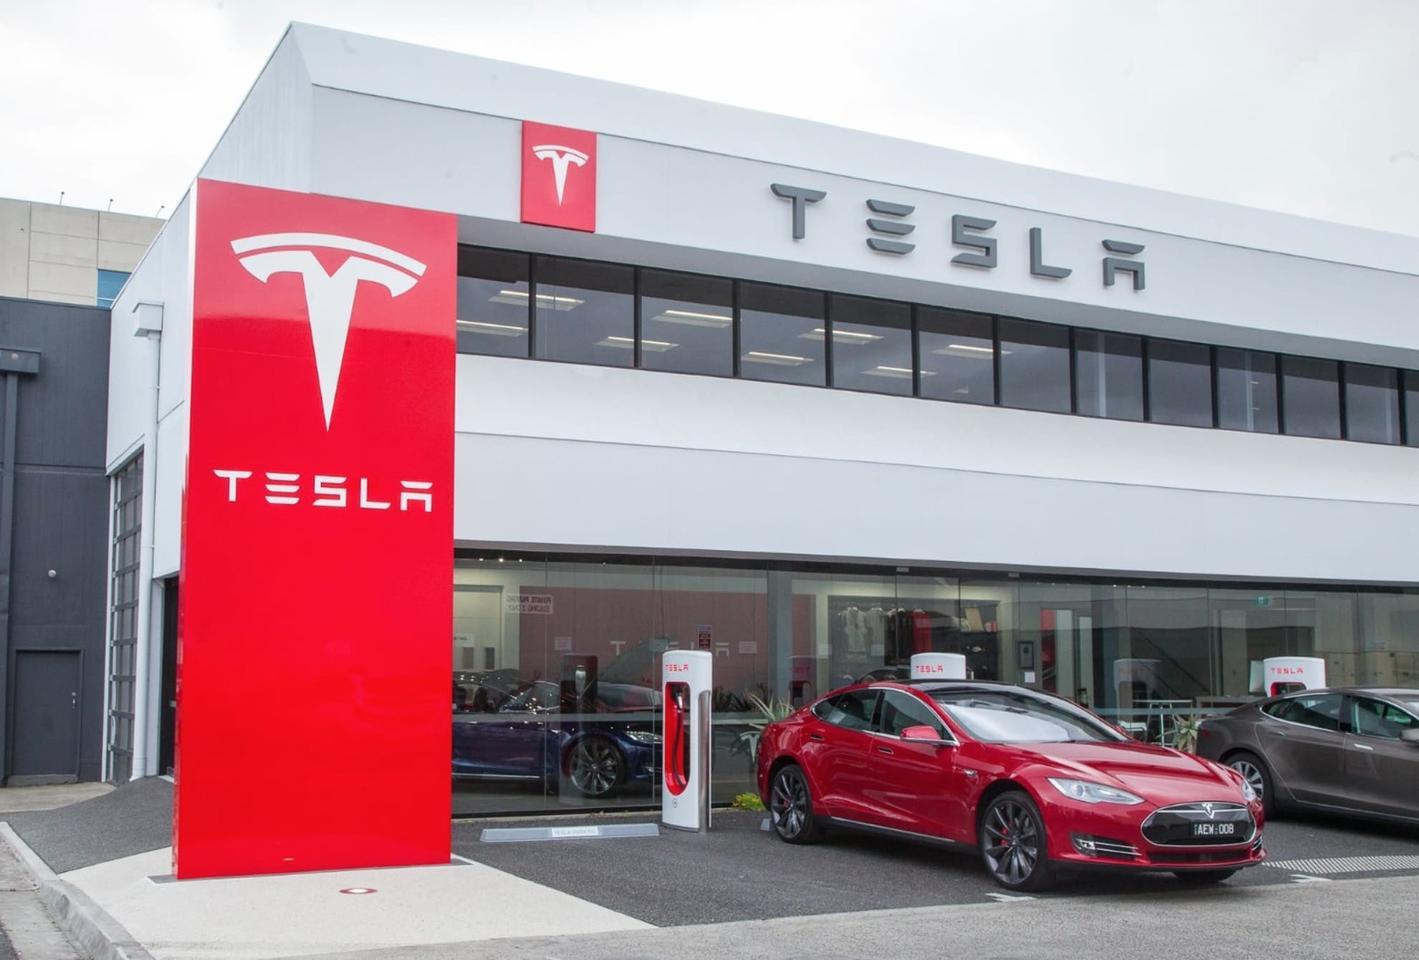 The free run for Tesla owners is over - Supercharger use will now be charged